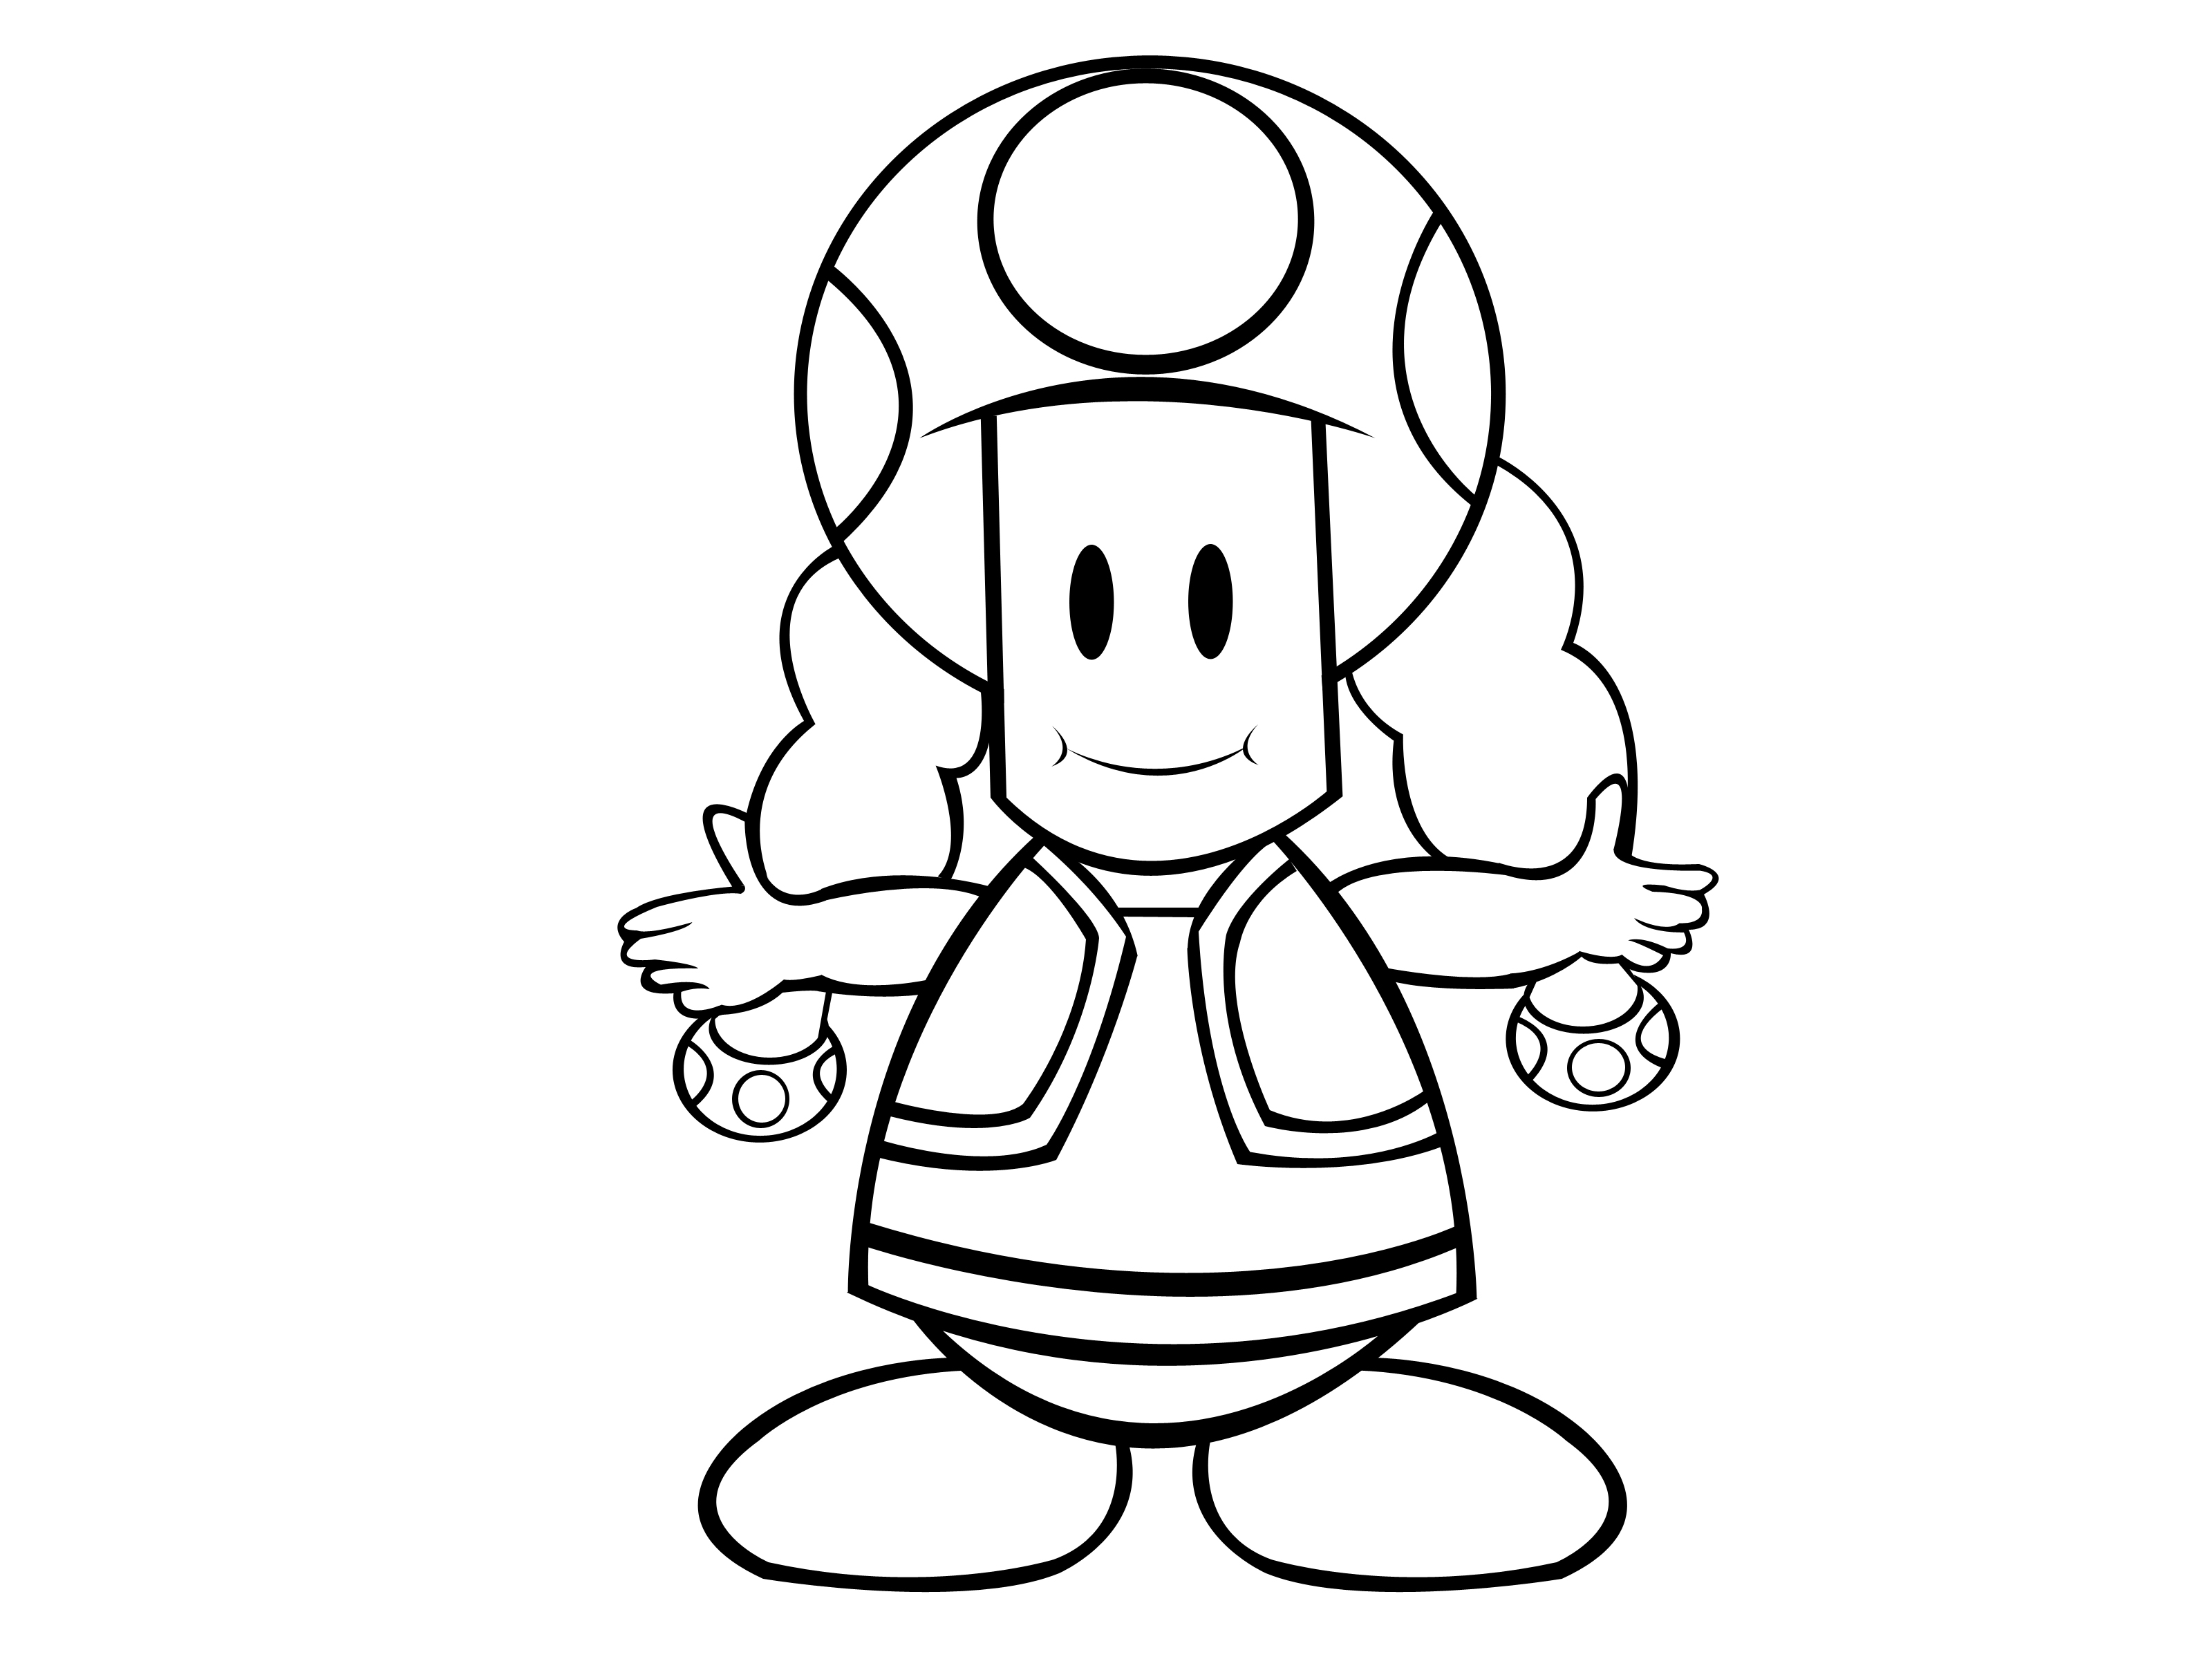 toad coloring pages from super mario super mario toad coloring pages get coloring pages toad pages mario super coloring from